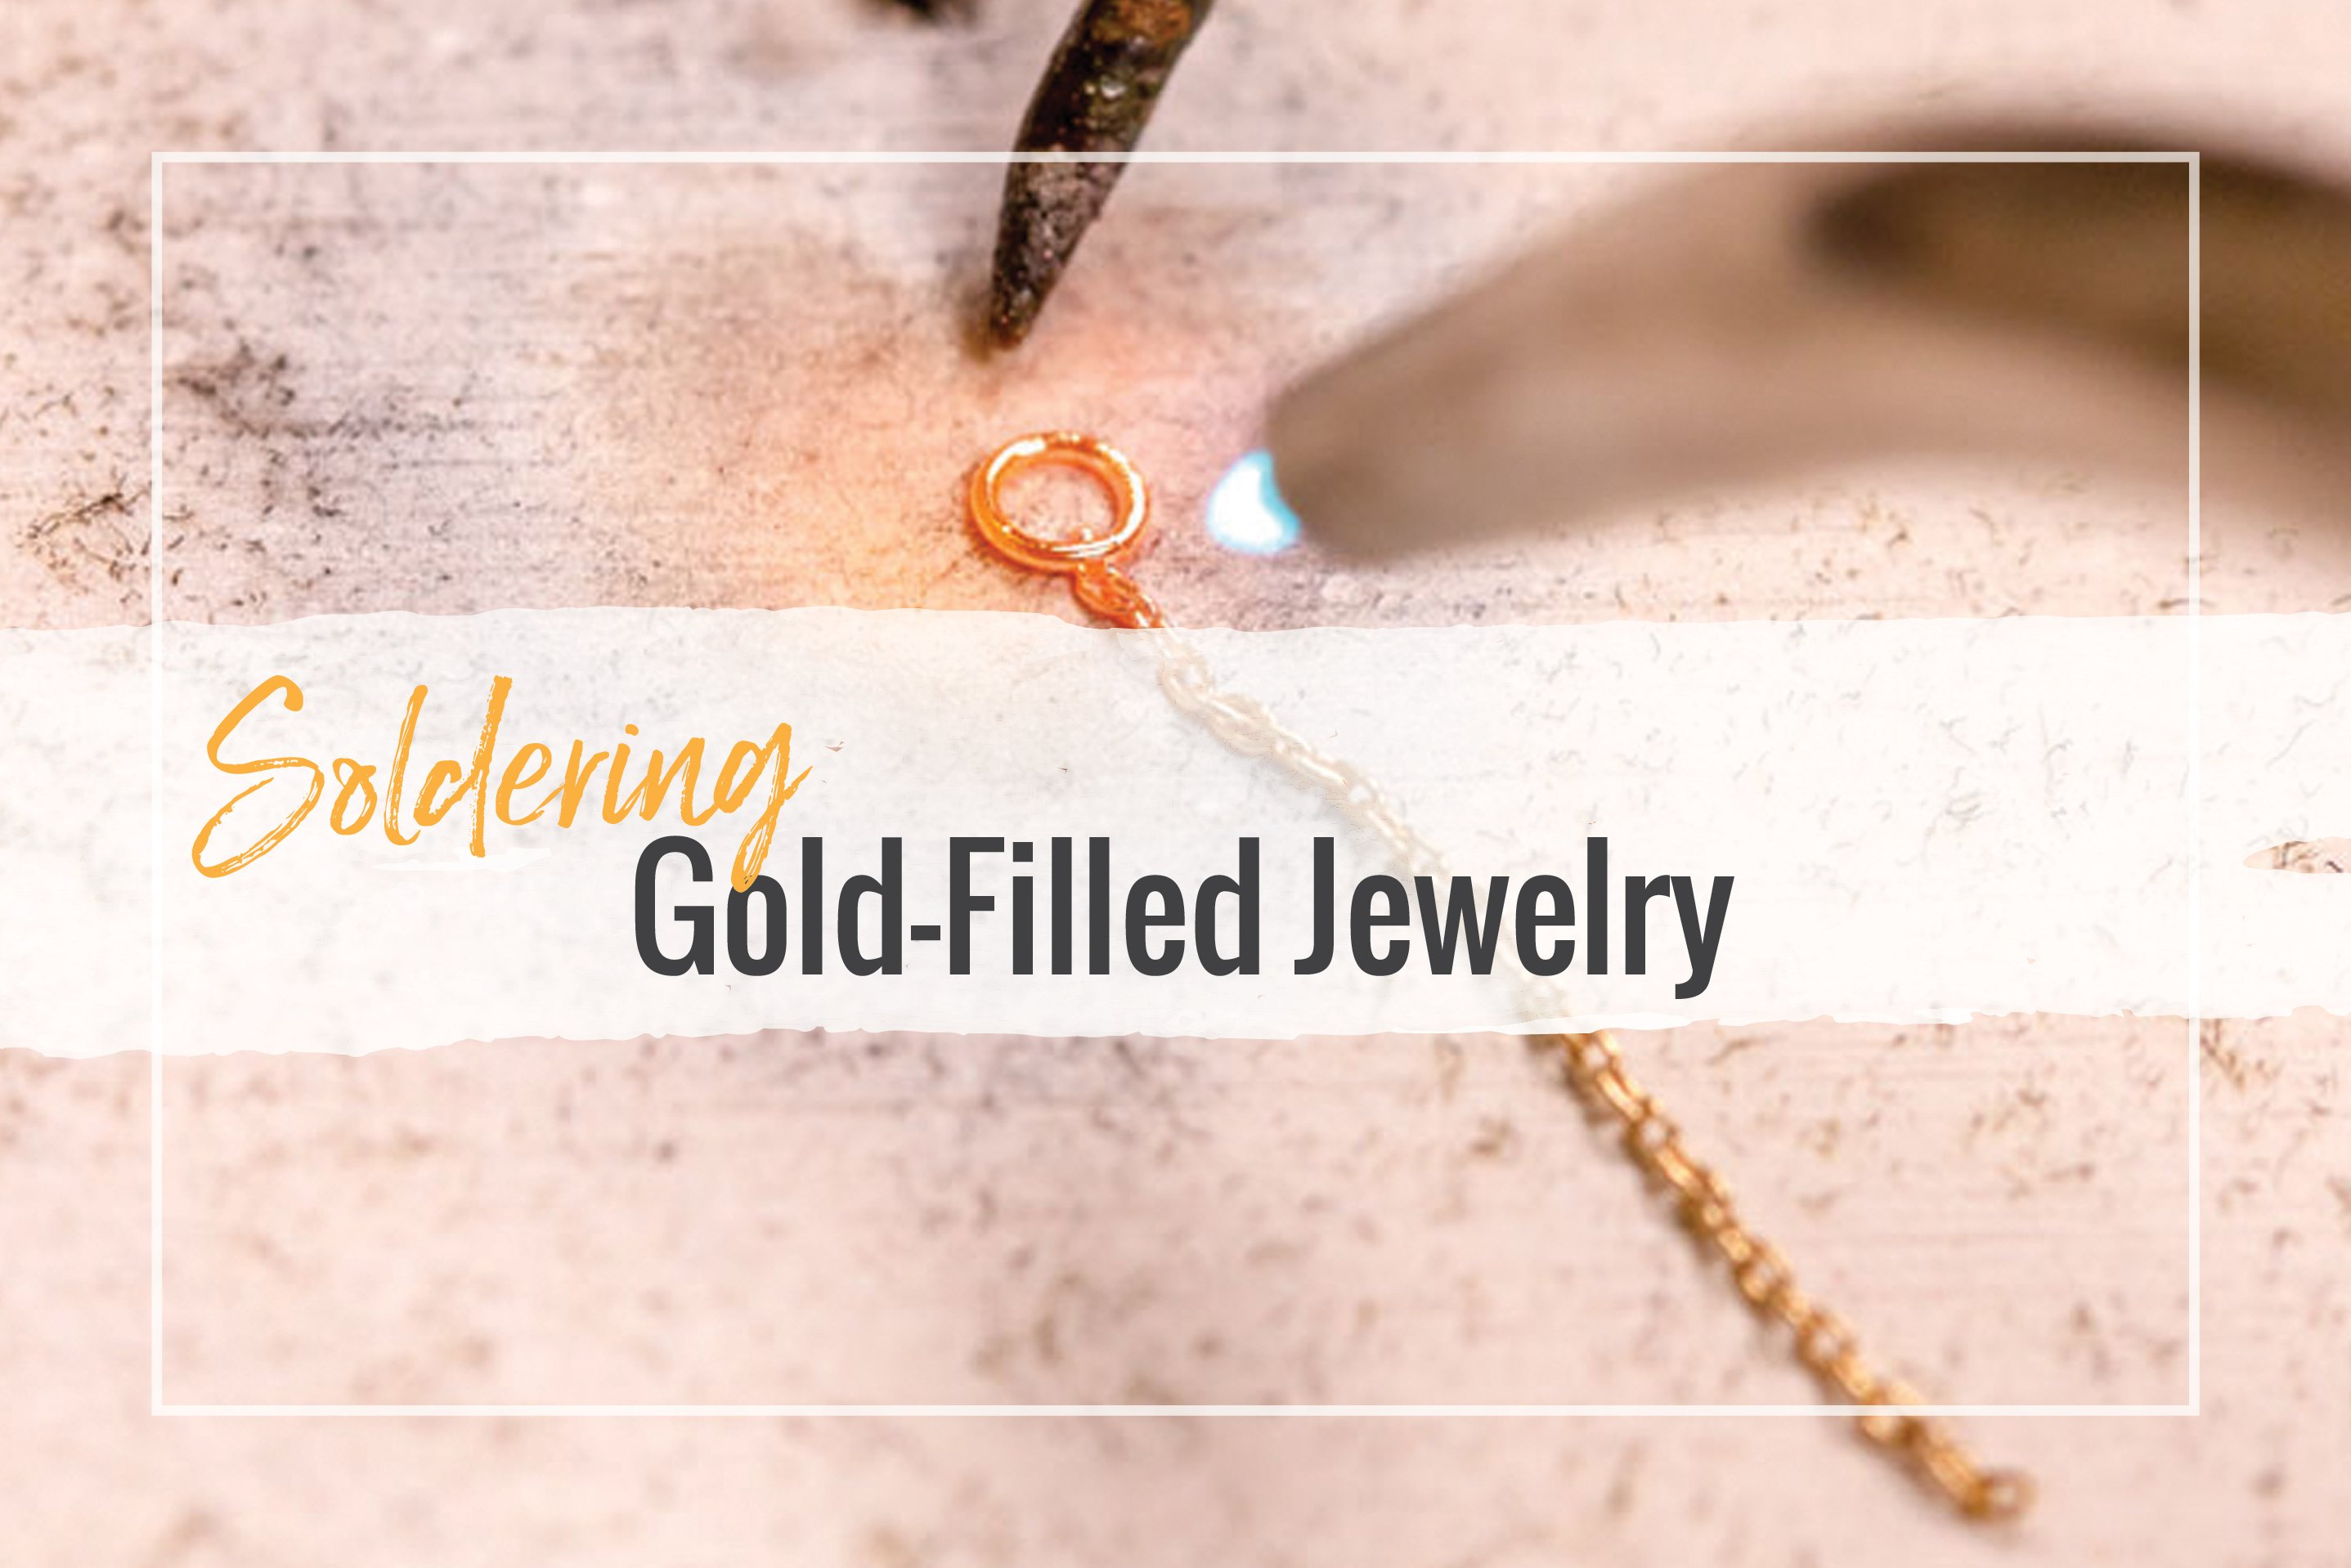 Soldering Gold-Filled Jewelry